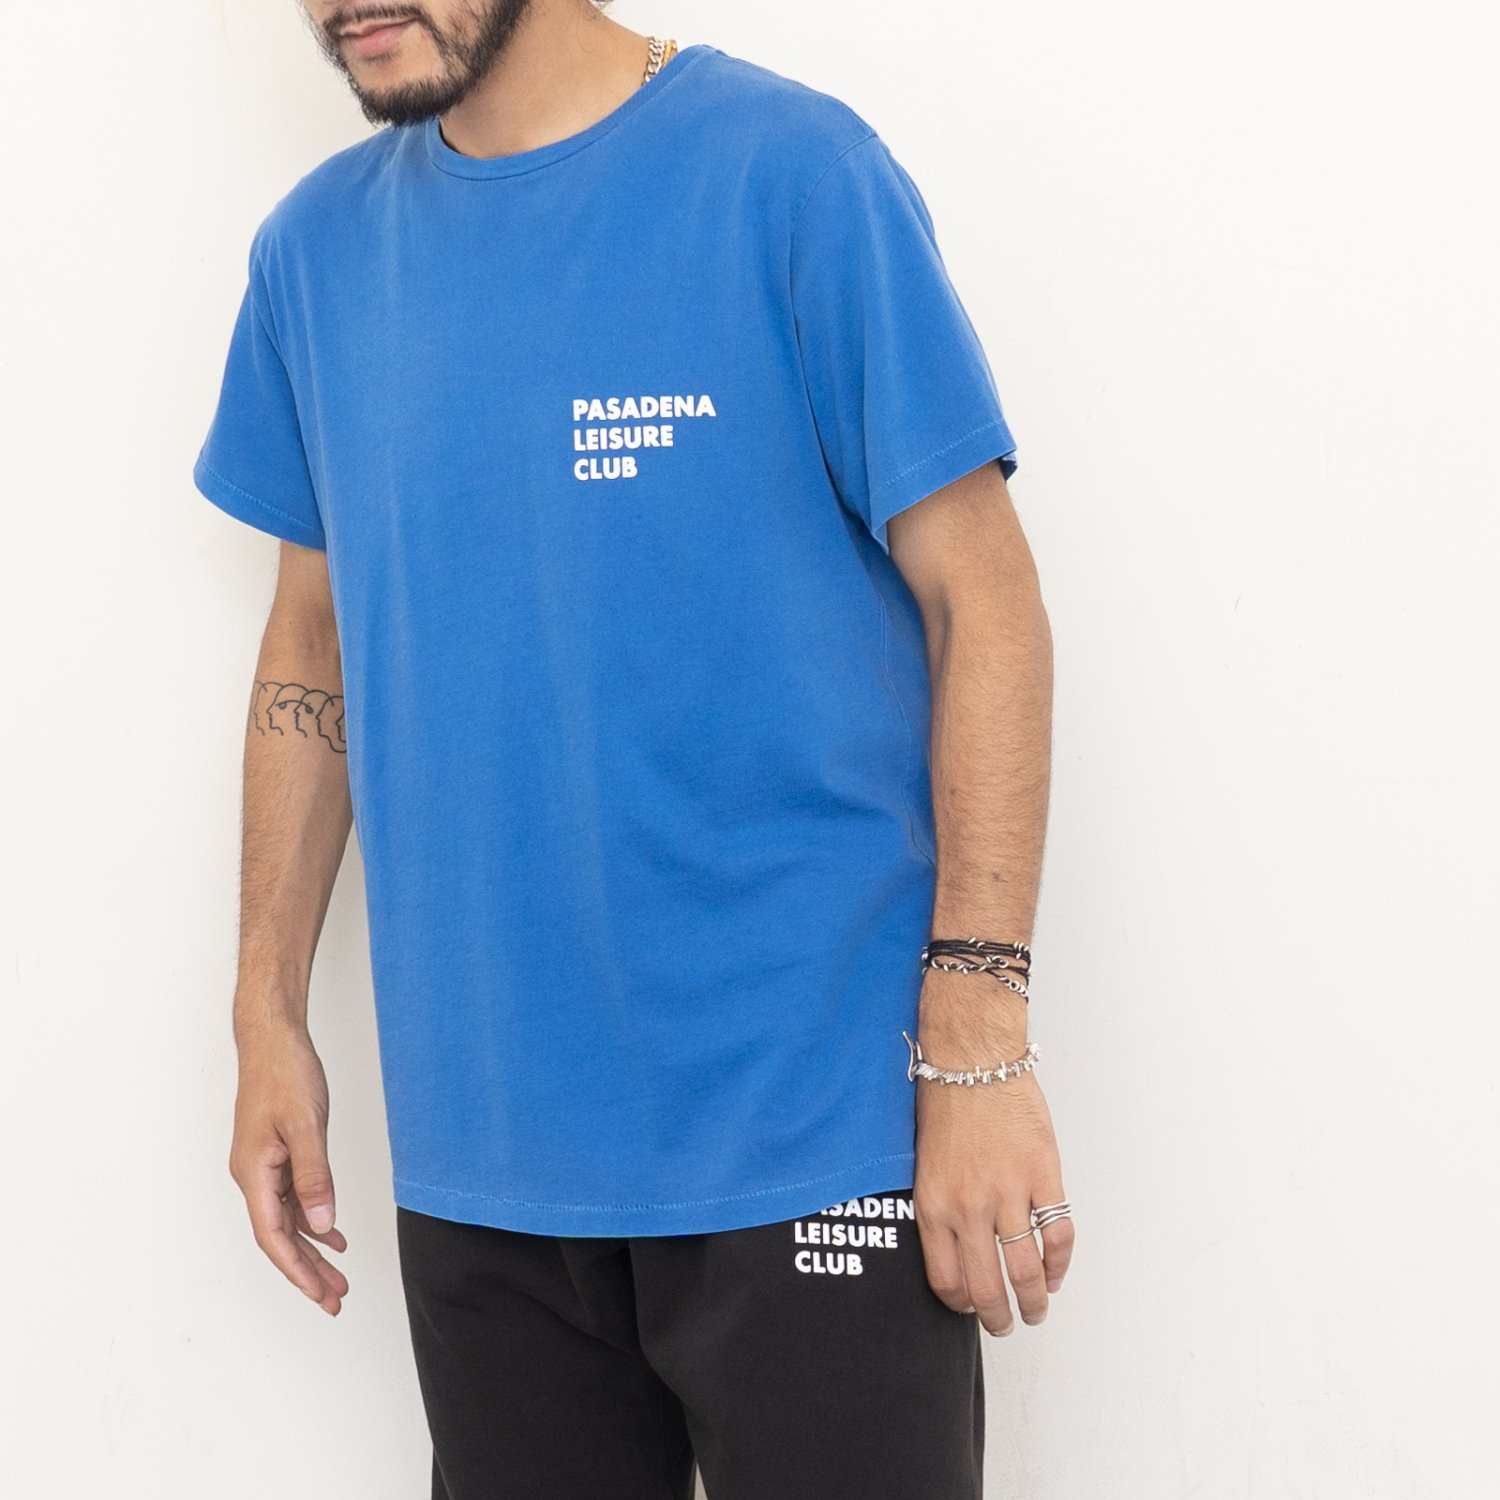 PASADENA LEISURE CLUB * Puff Logo Tee * Blue Pigment Dye